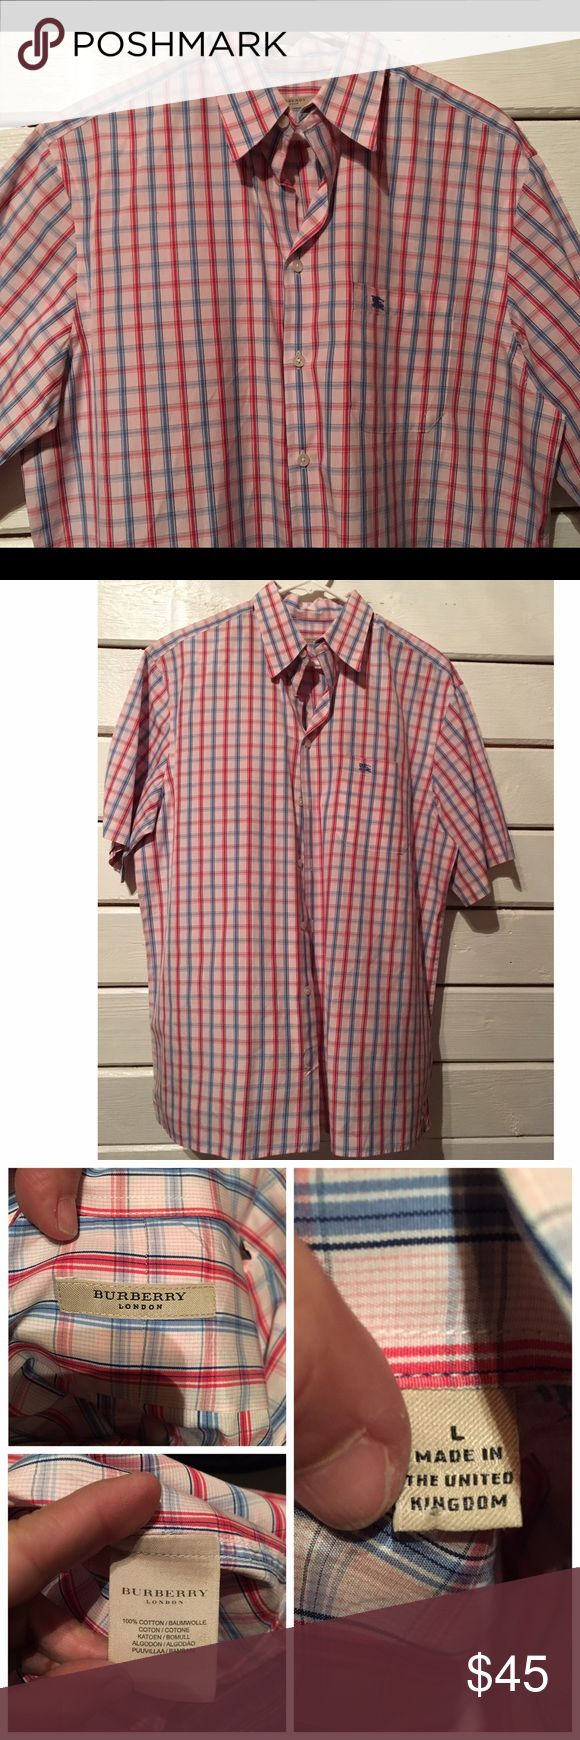 Burberry men's shirt. Large. Burberry men's shirt. Size large. Shirt in EXCELLENT condition , no stains, no rips, all buttons. Get your guy a Burberry shirt for a quarter of the price. Burberry Shirts